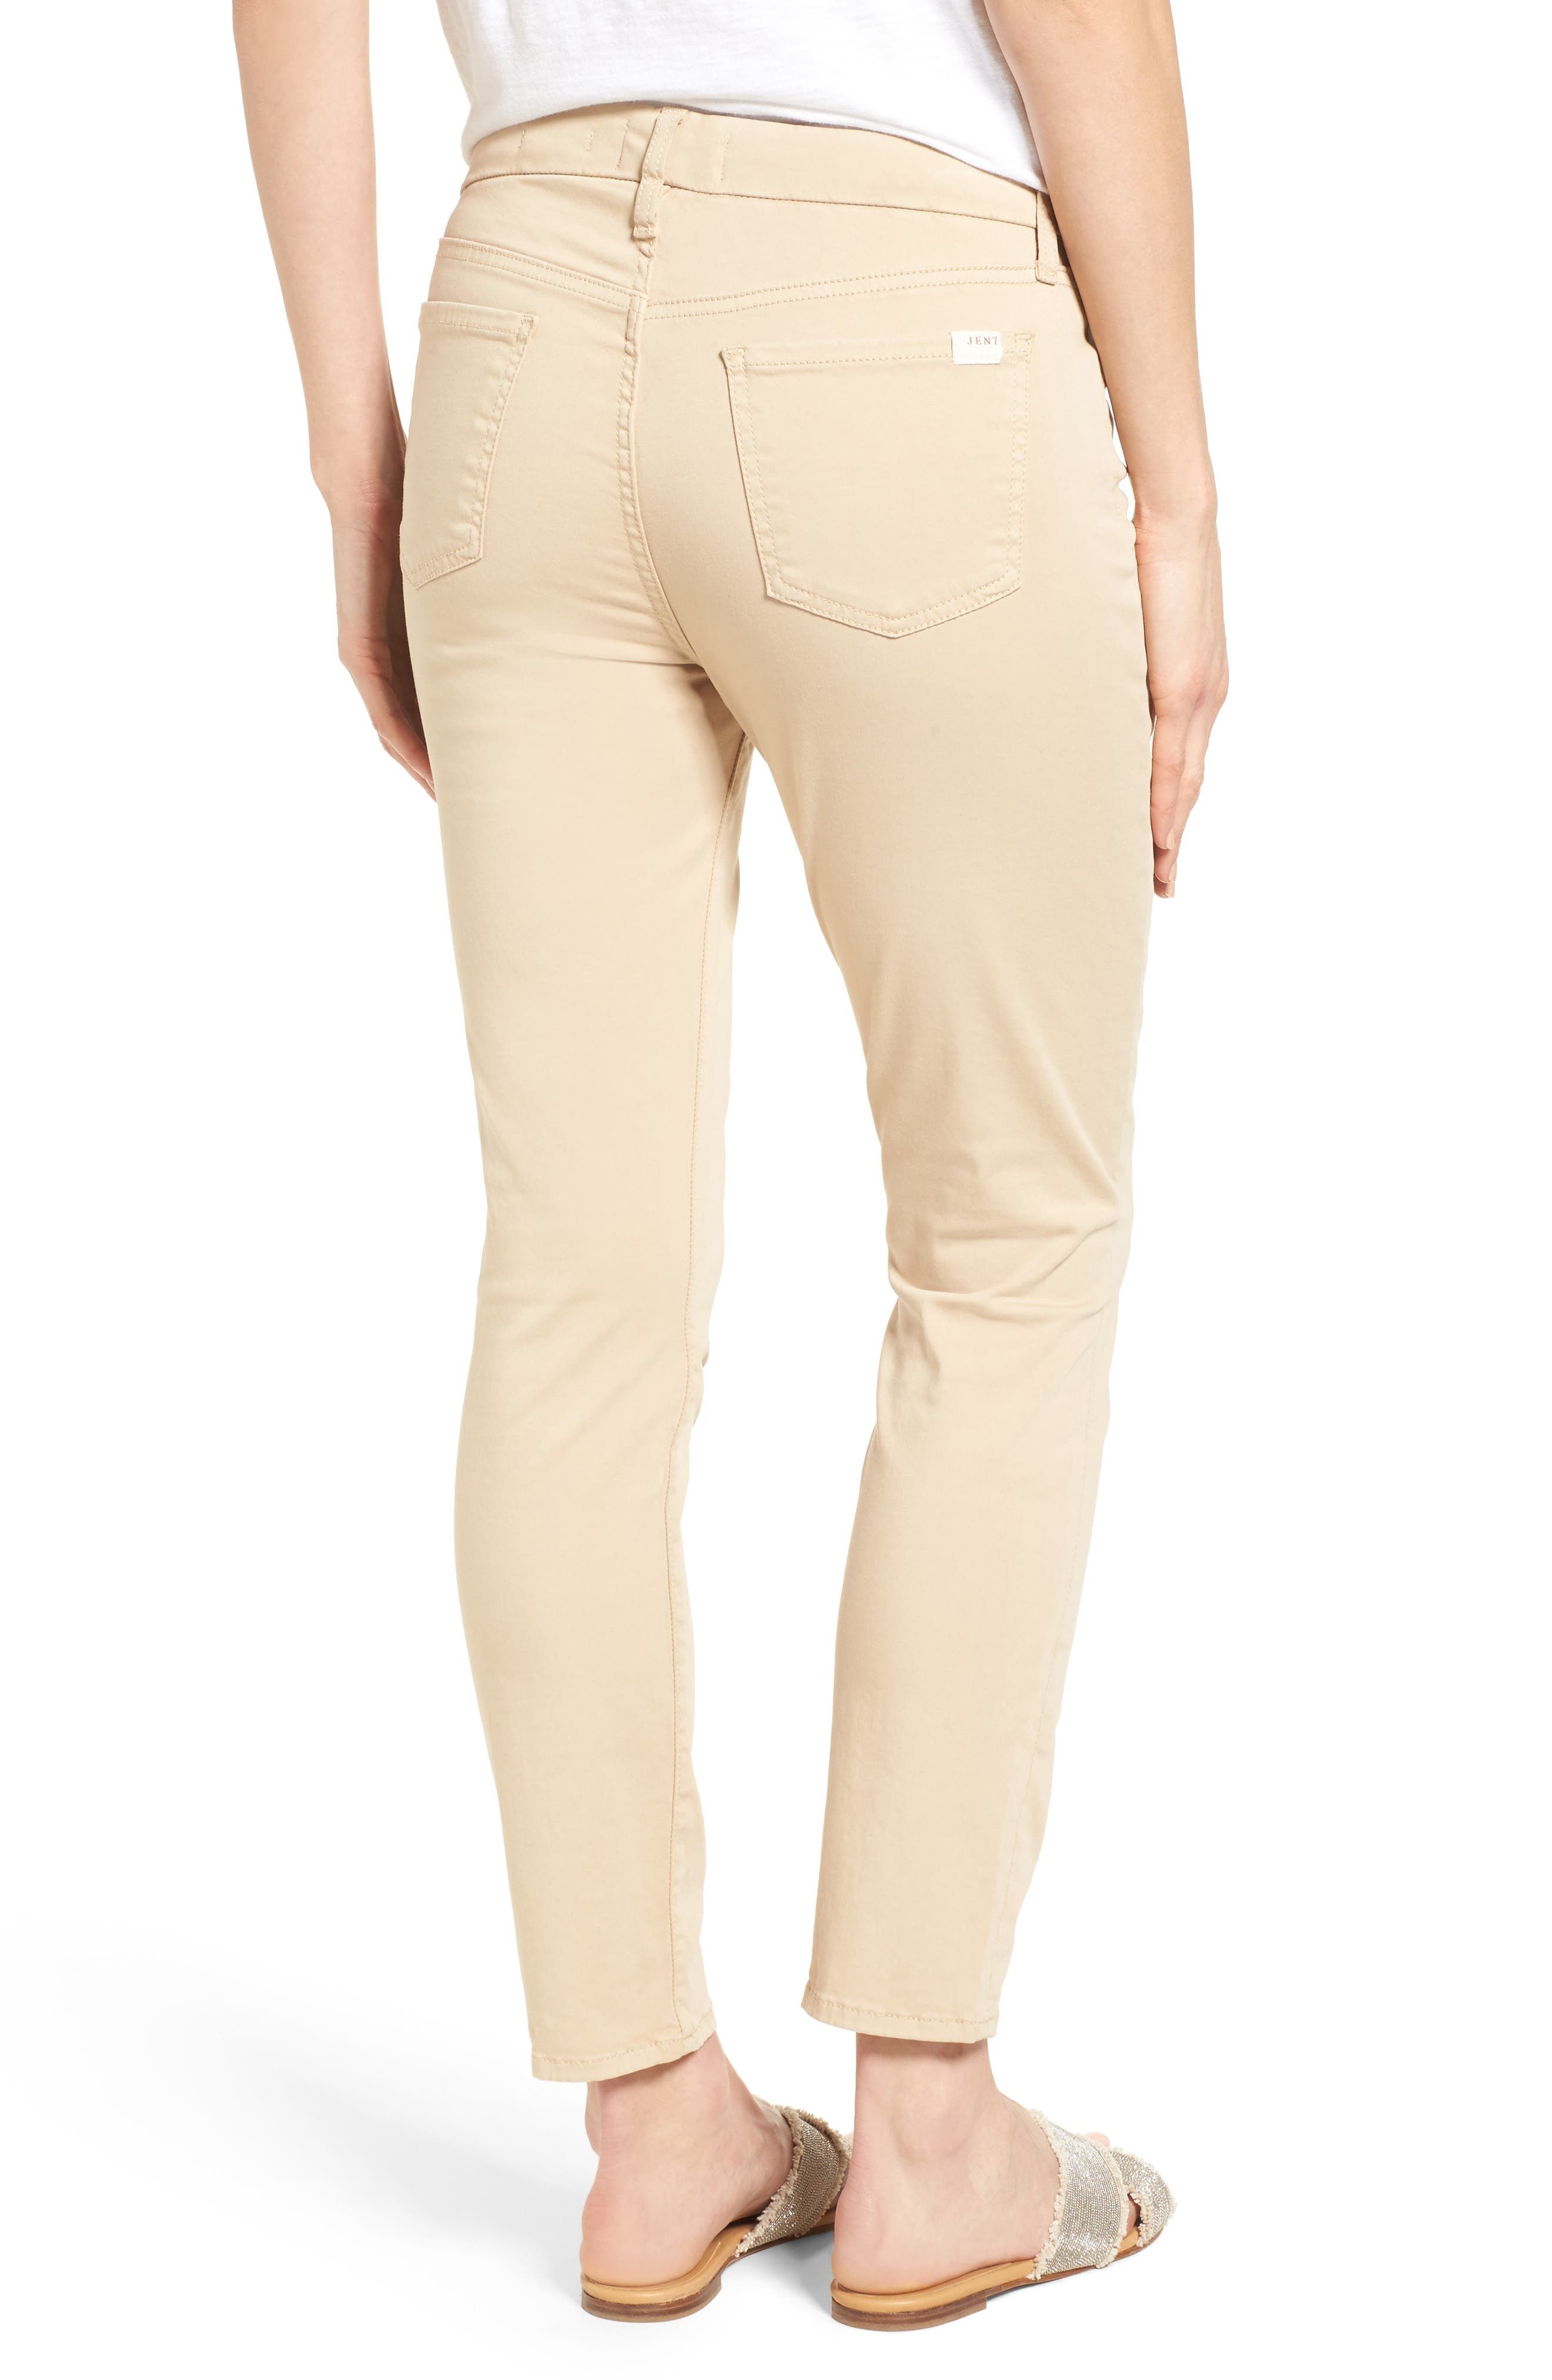 Colored Stretch Ankle Skinny Jeans,                             Alternate thumbnail 2, color,                             251